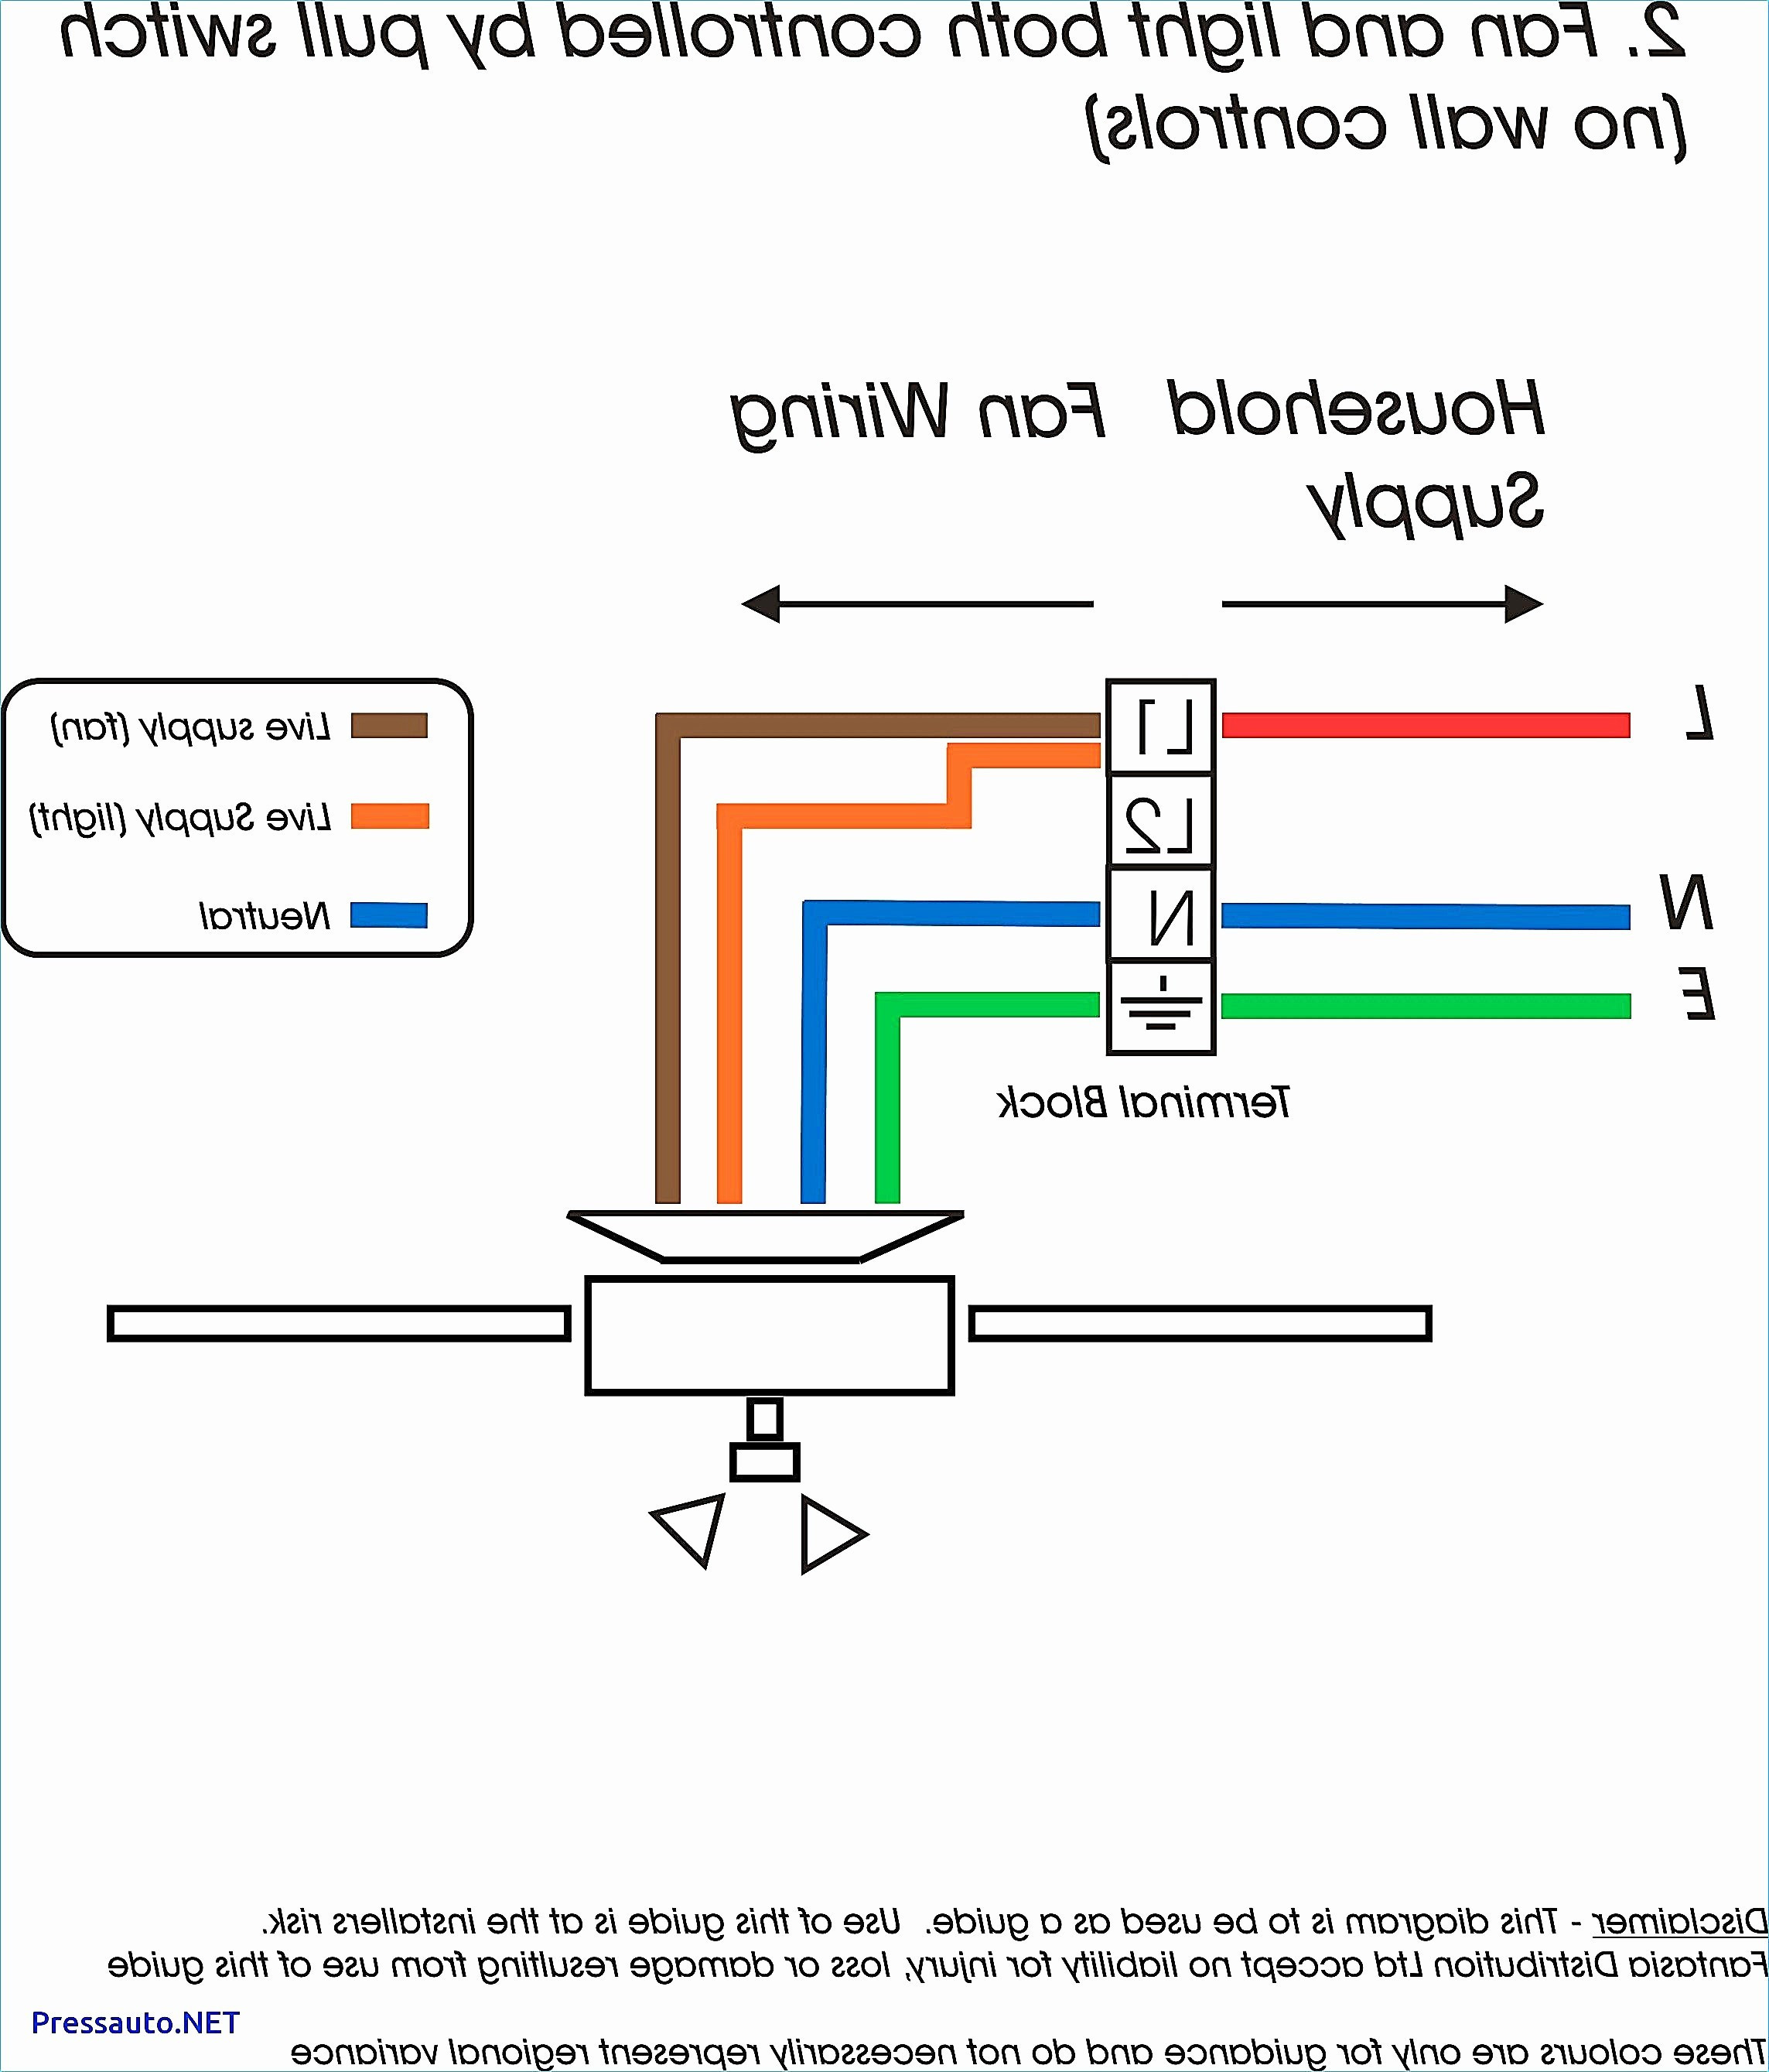 240v heater wiring diagram Download-Wiring Diagram For A Baseboard Heater Thermostat Inspirationa Wiring Diagram 240v Baseboard Heater Thermostat Best Baseboard 10-s